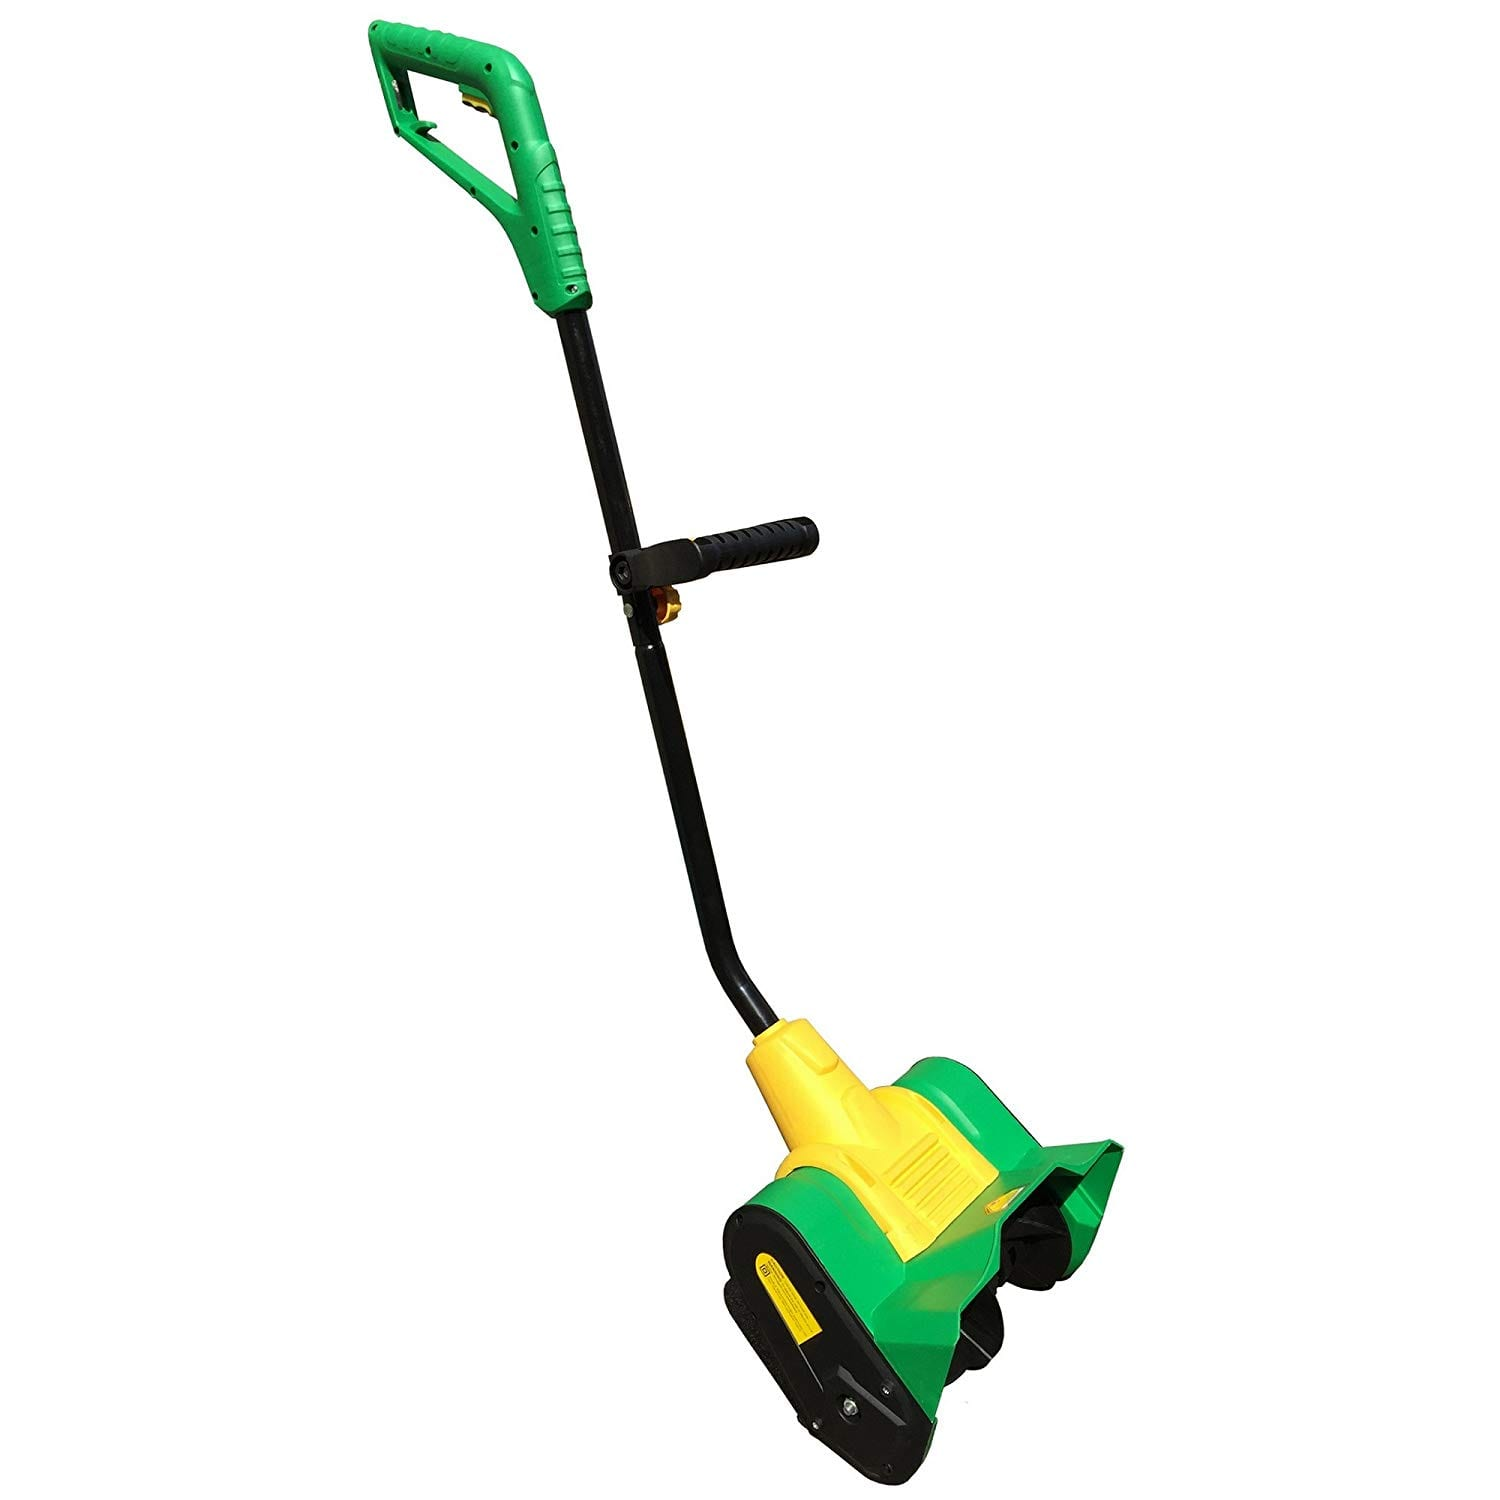 Homegear Electric Snow Shovel